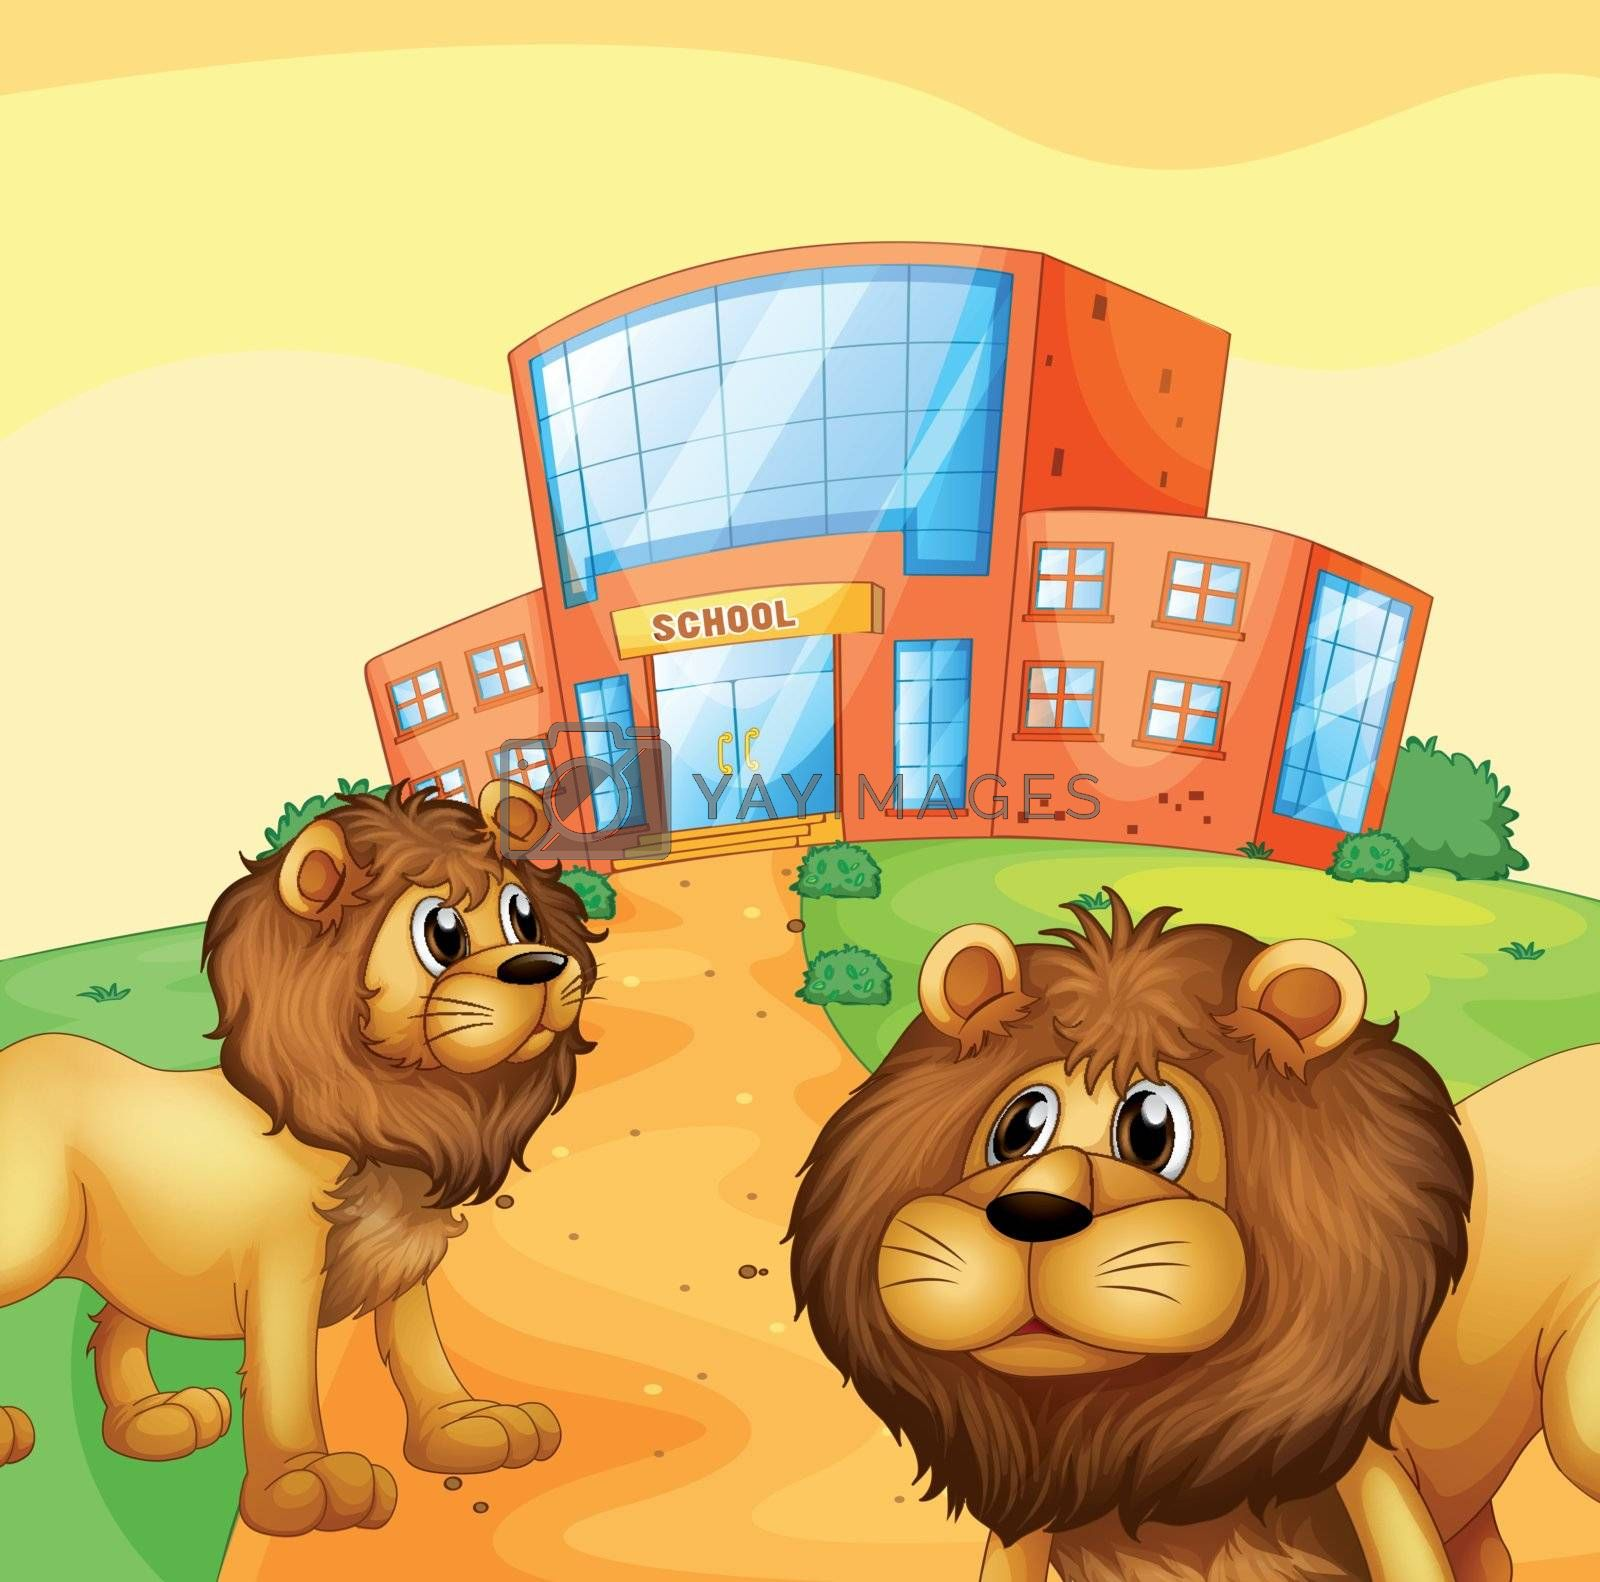 Illustration of the two wild lions in front of a school building